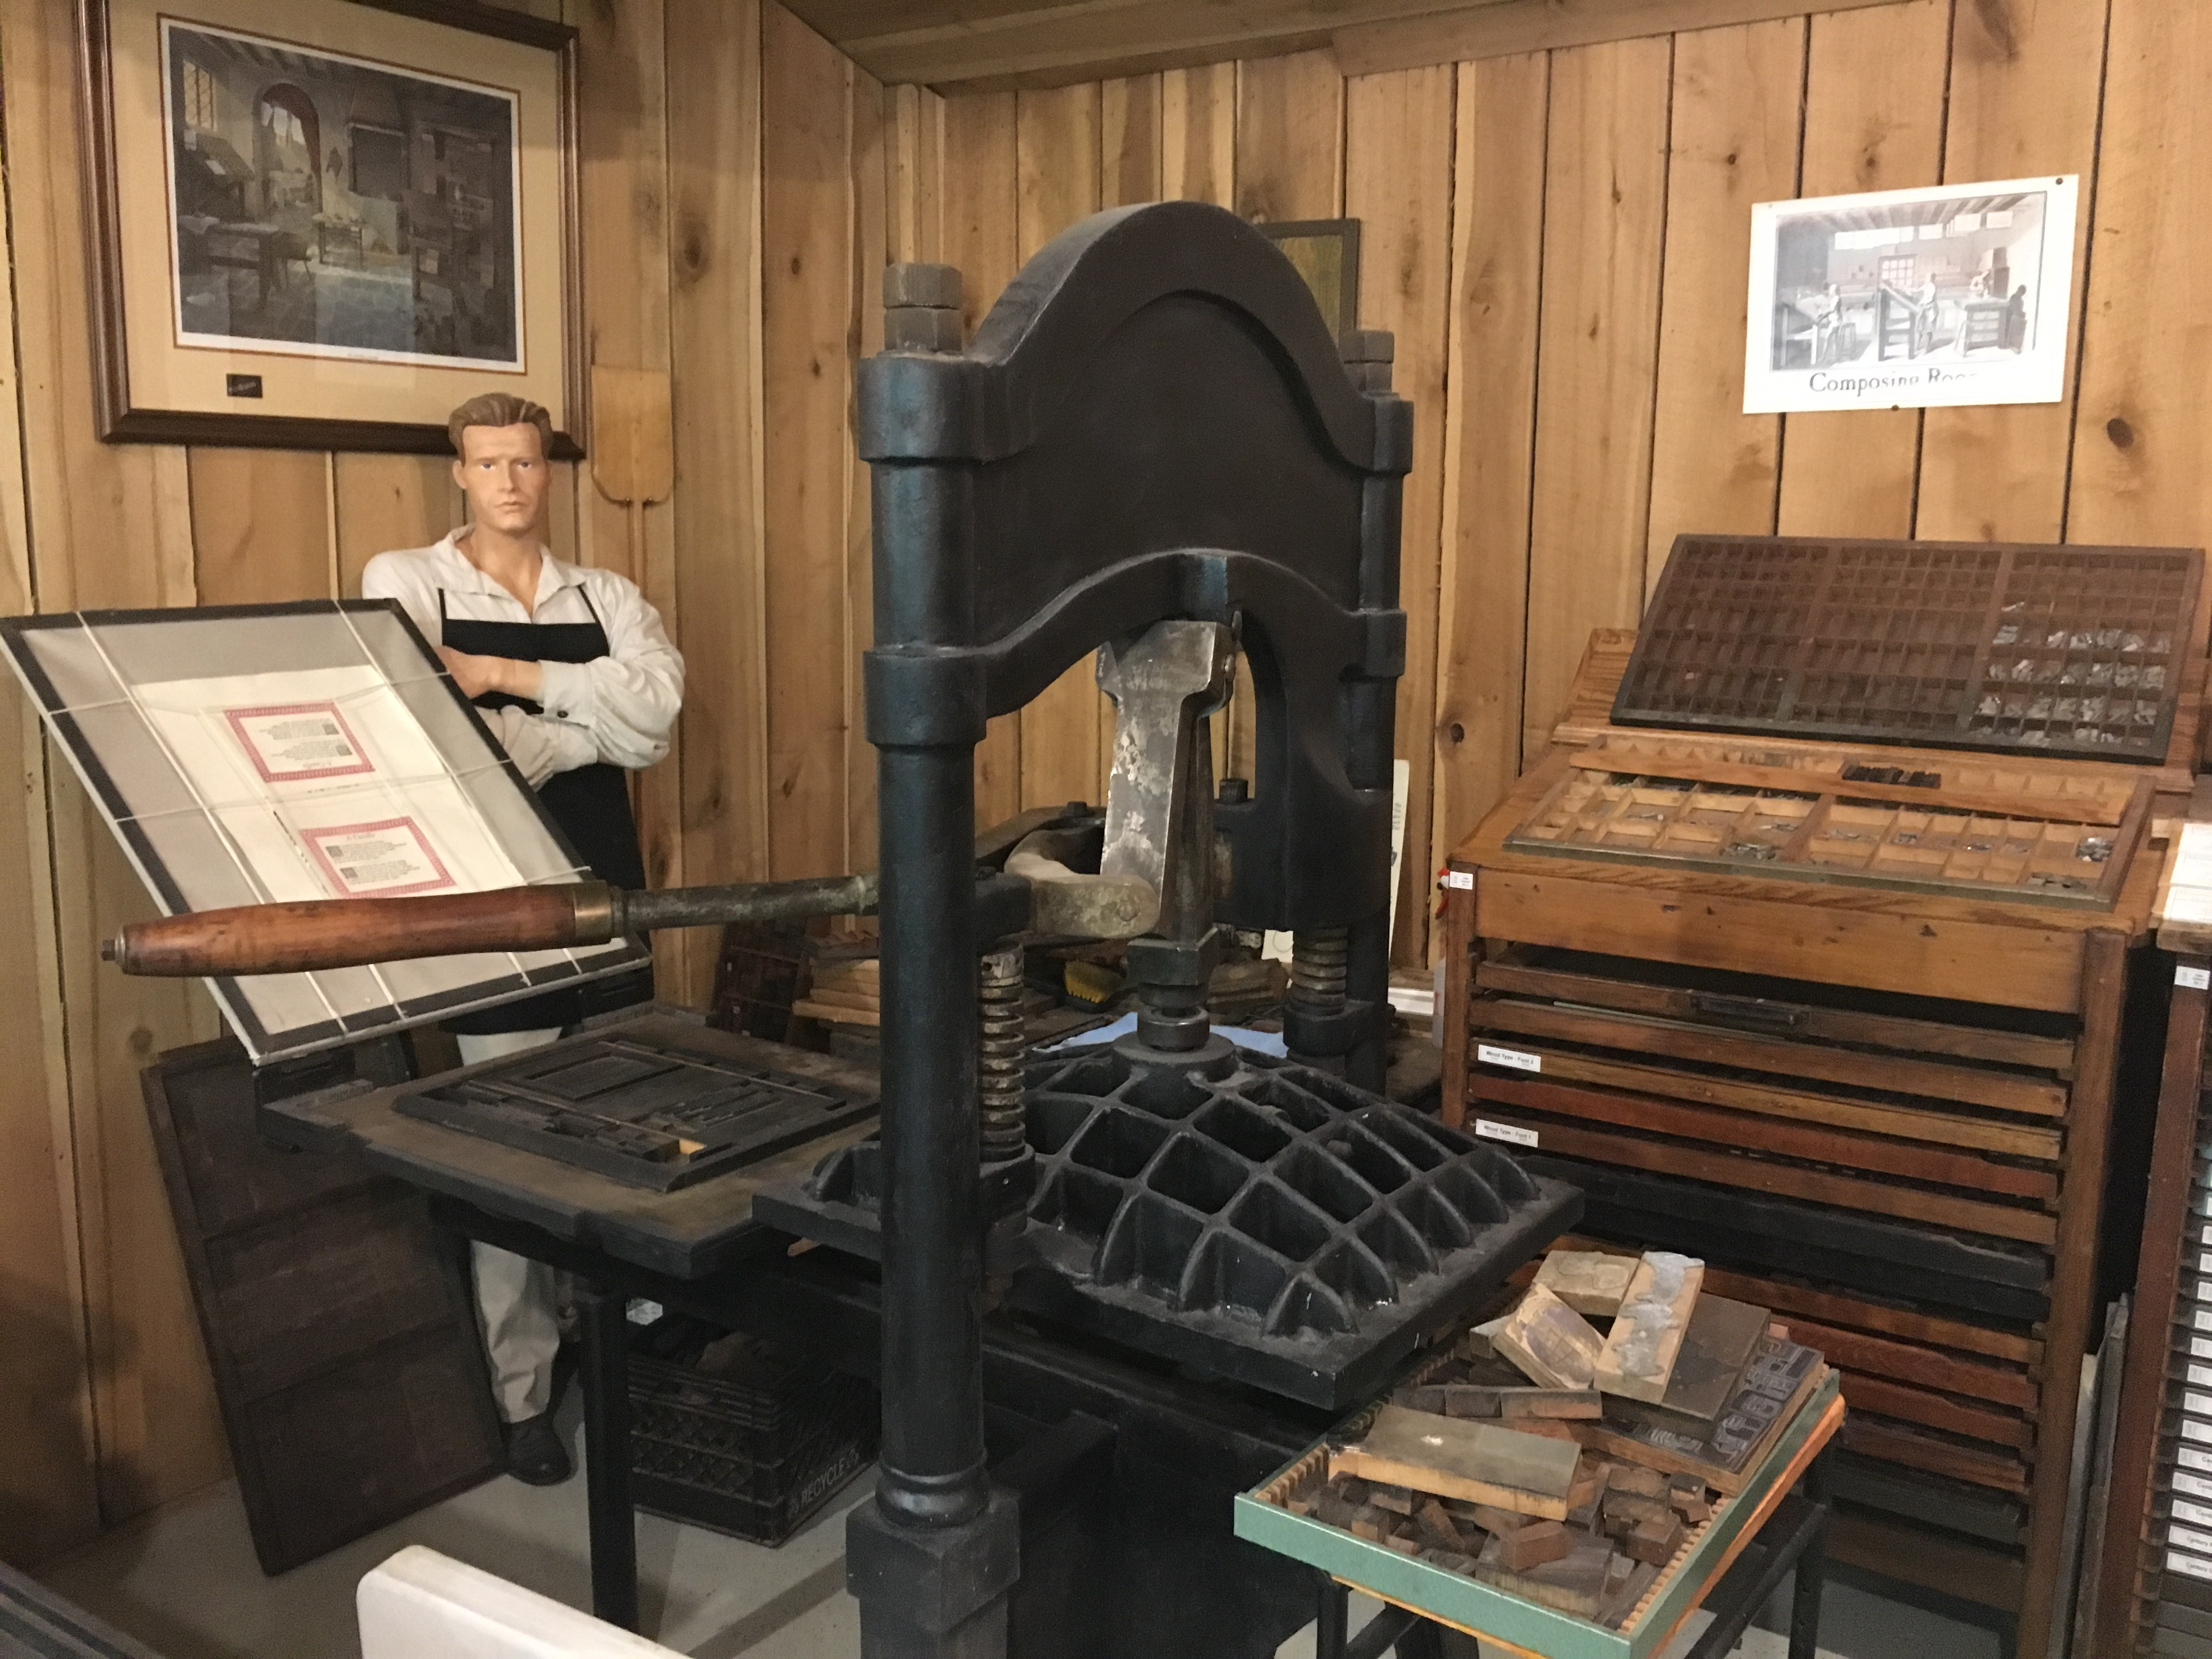 Printing presses have been in use in the Western world since the mid-1400s and continued to be used up until the computer age.